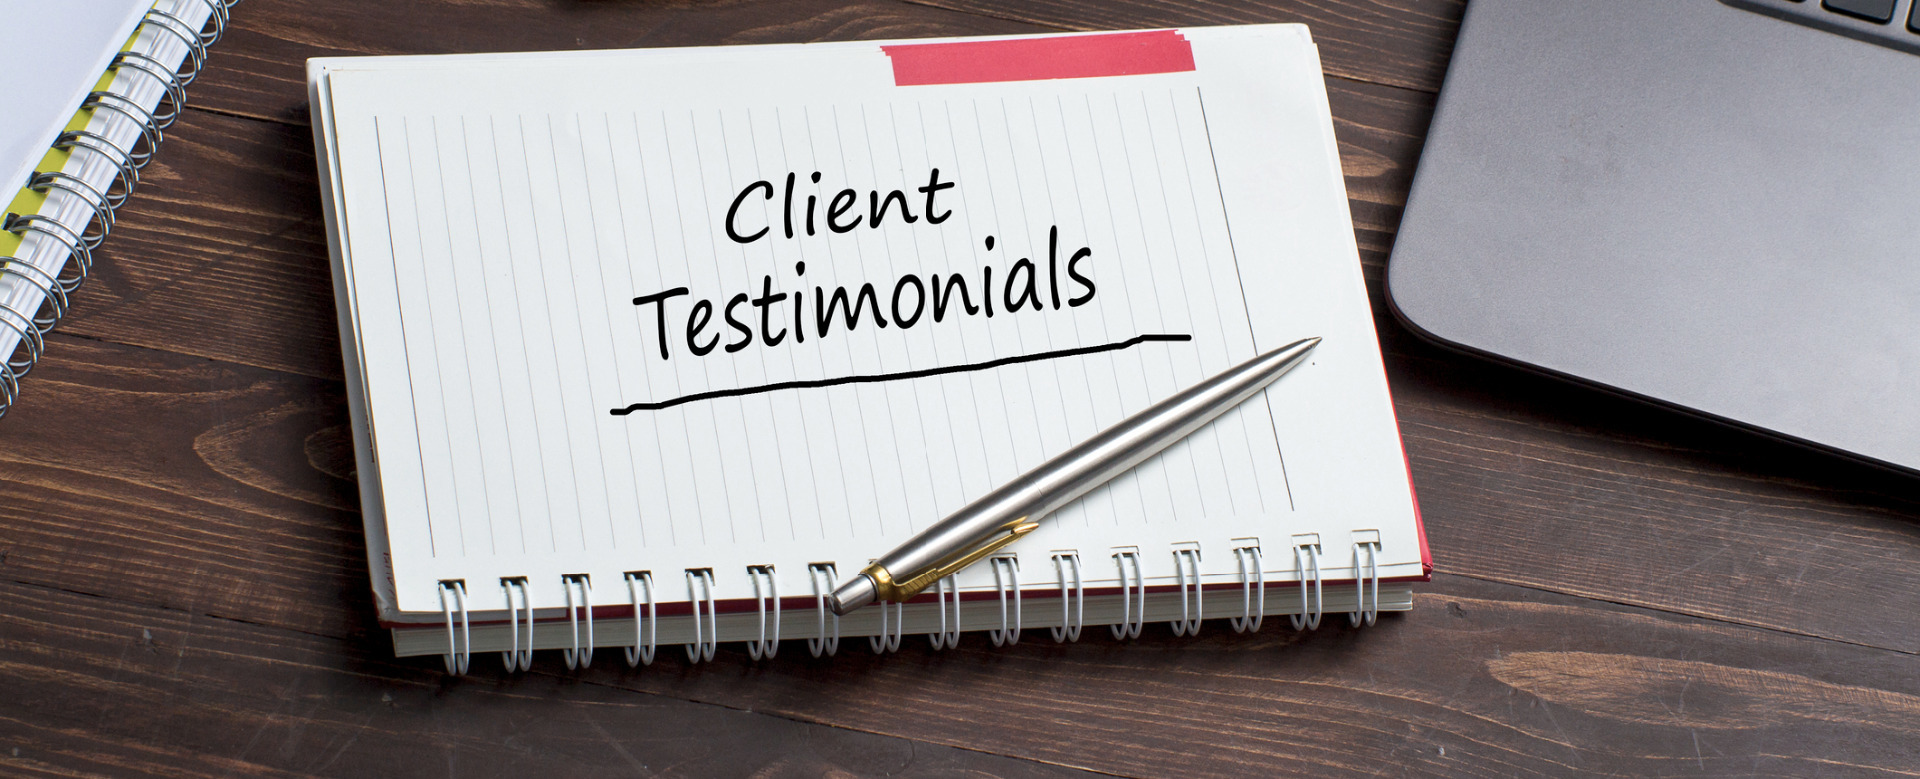 Note pad with clients testimonials written across the page